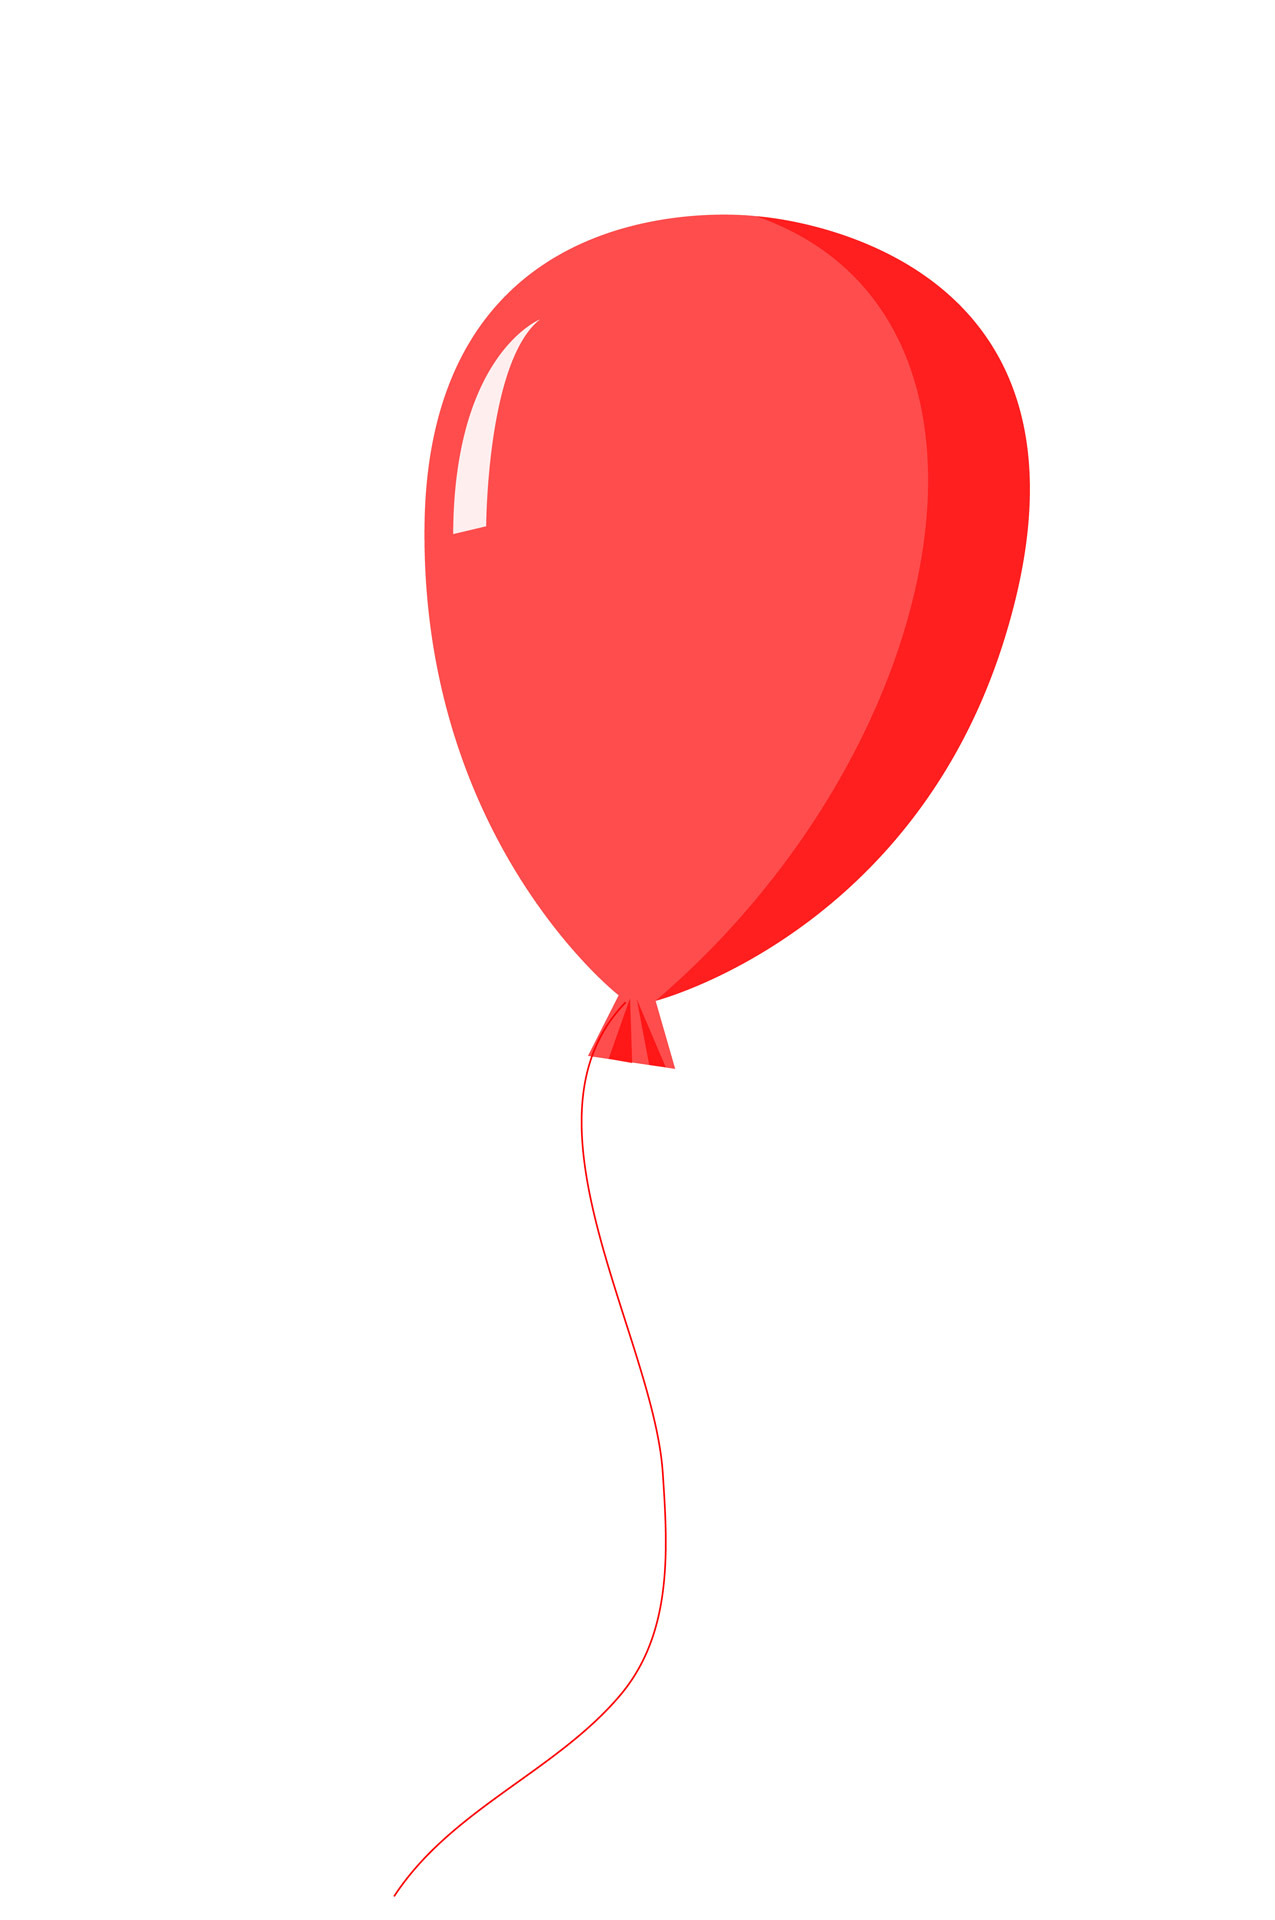 Clipart balloon. Red free stock photo